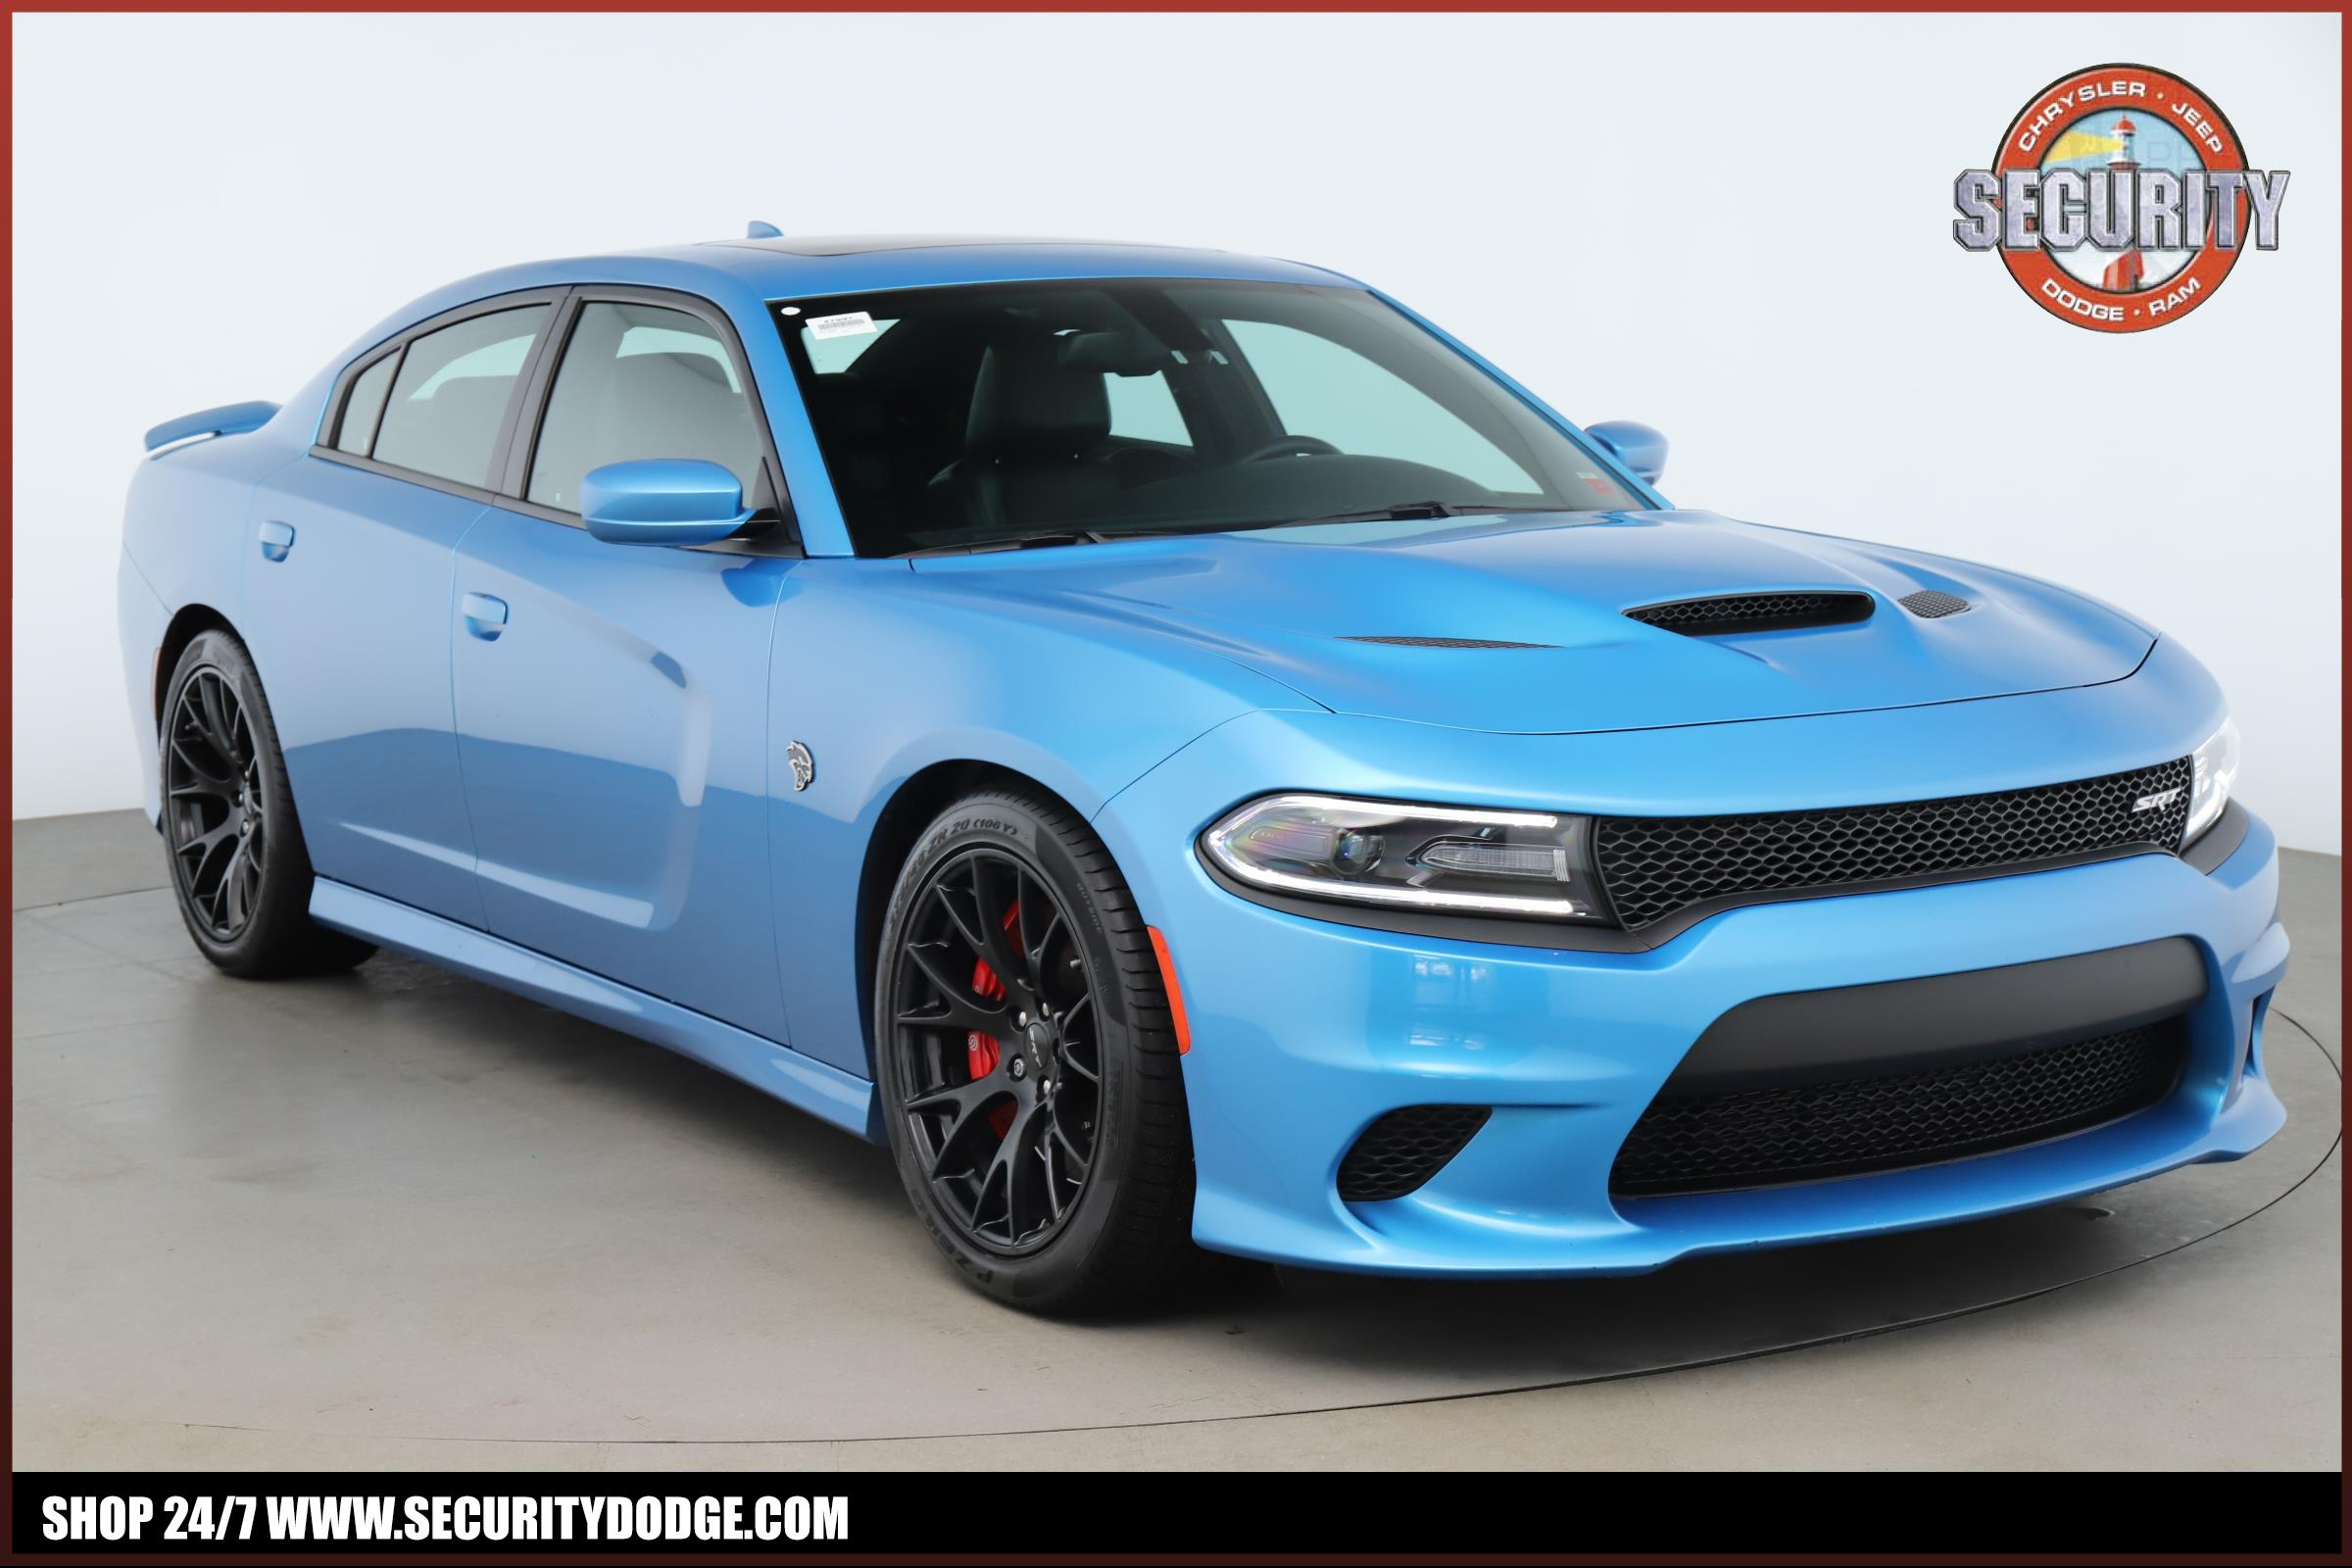 Dodge Charger Srt >> Pre Owned 2015 Dodge Charger Srt Hellcat Rear Wheel Drive Srt Hellcat